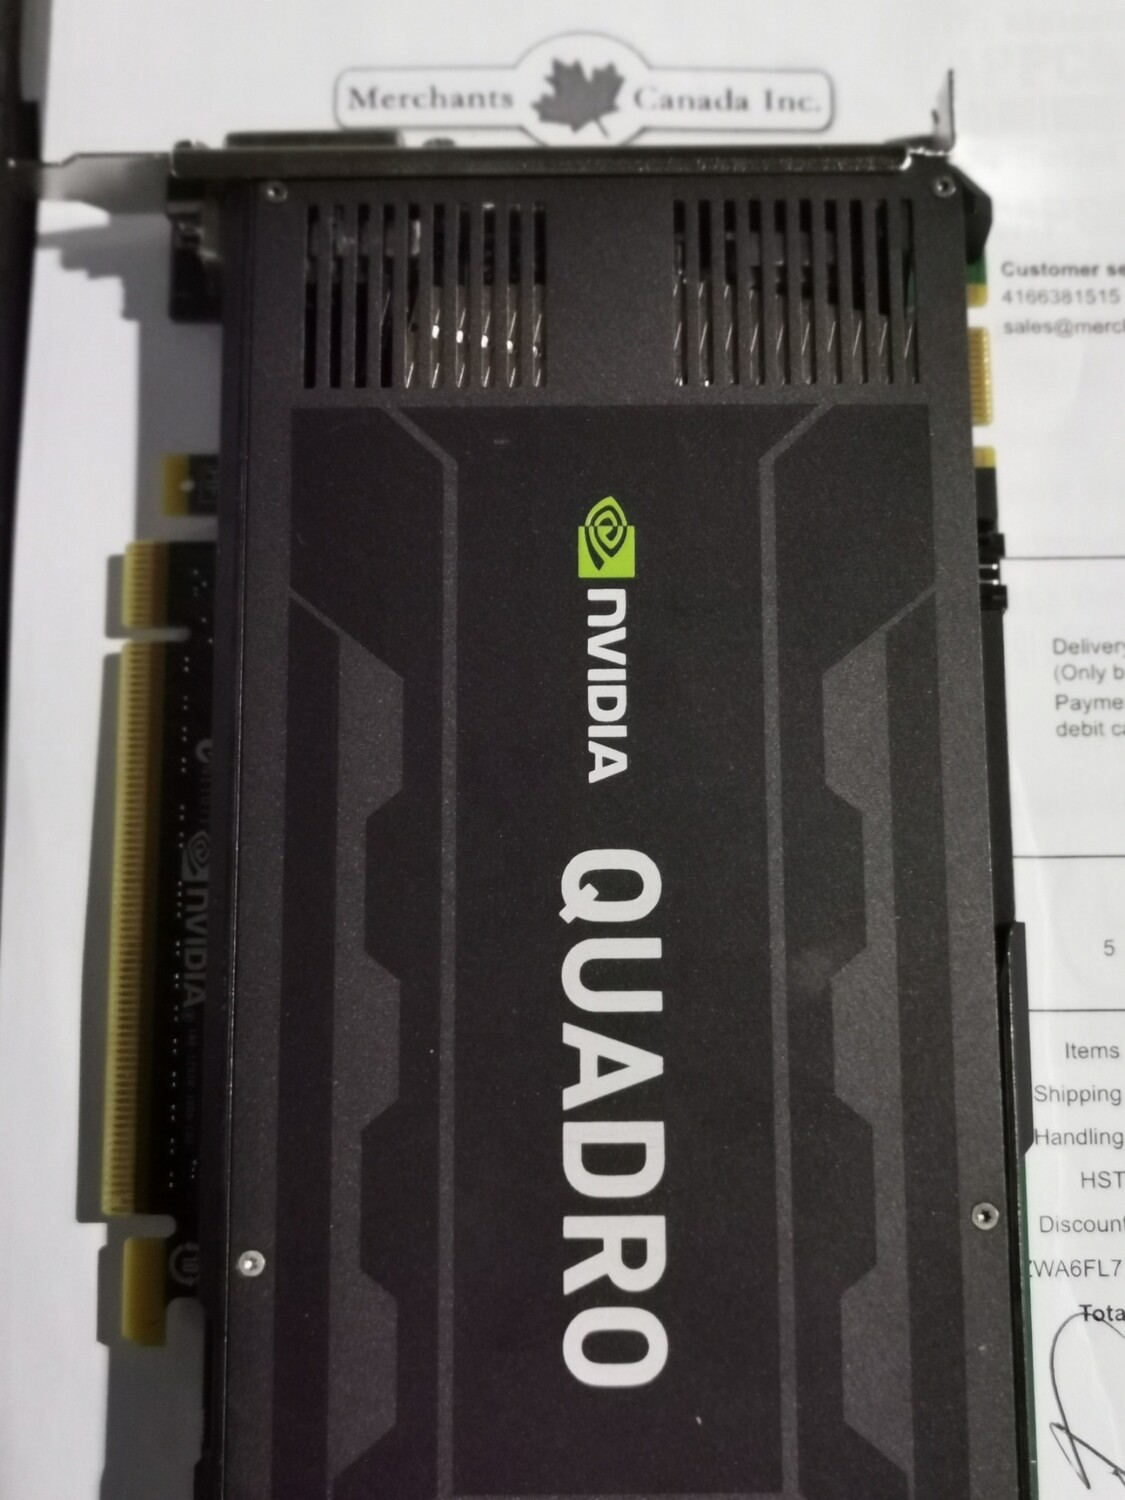 IBM Nvidia Quadro K4000 3GB GDDR5 PCl-E Graphics Card | 03T8312